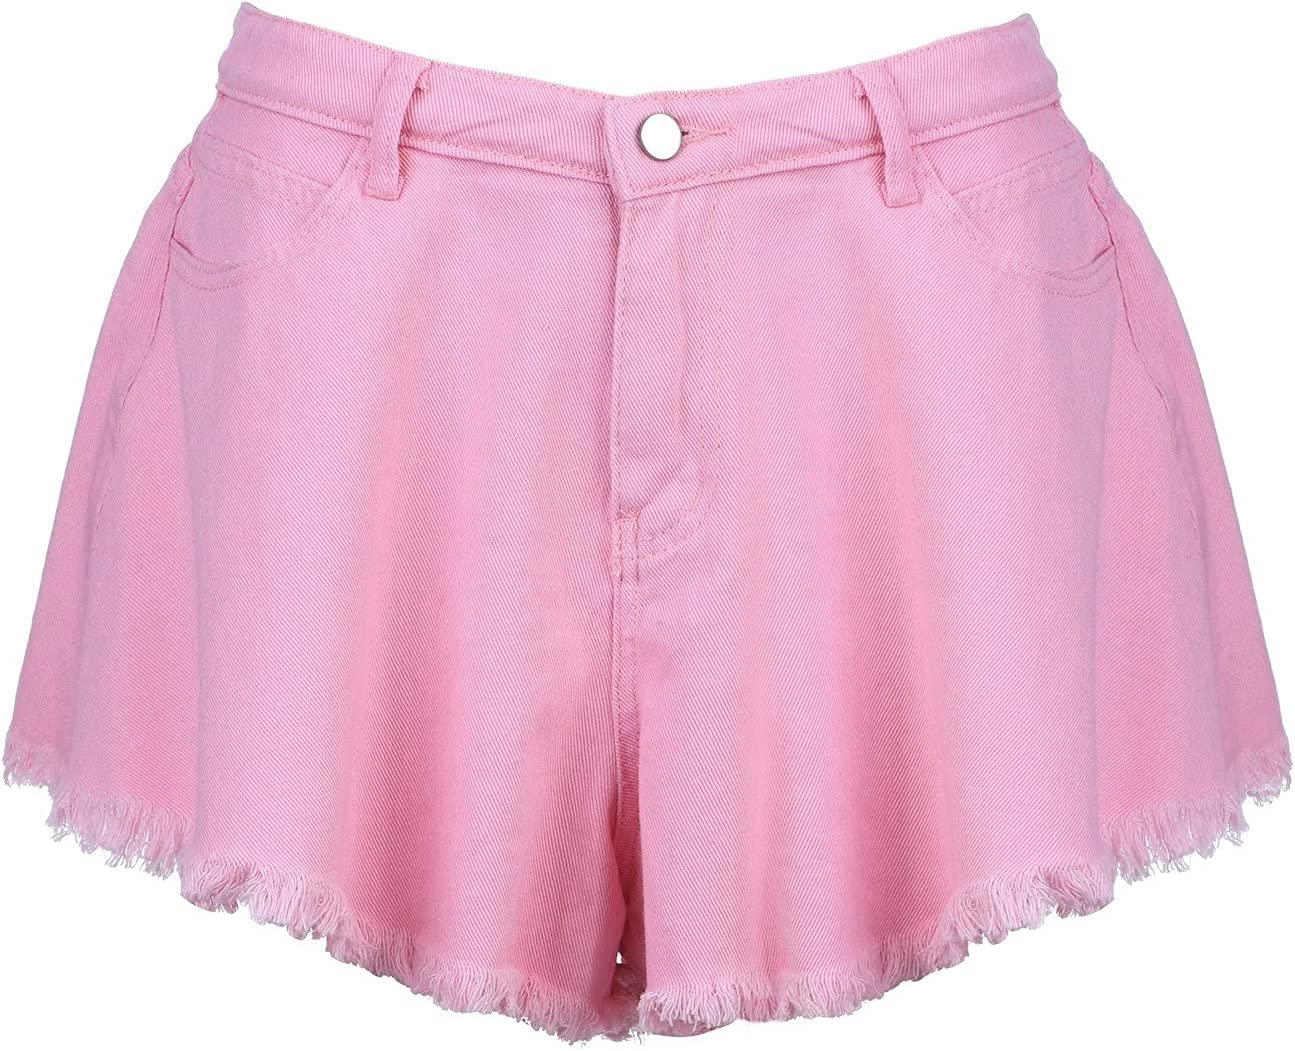 KEJINKCSEE Denim Shorts for Manufacturer direct delivery Women Waist Summer Irre Animer and price revision Elastic High